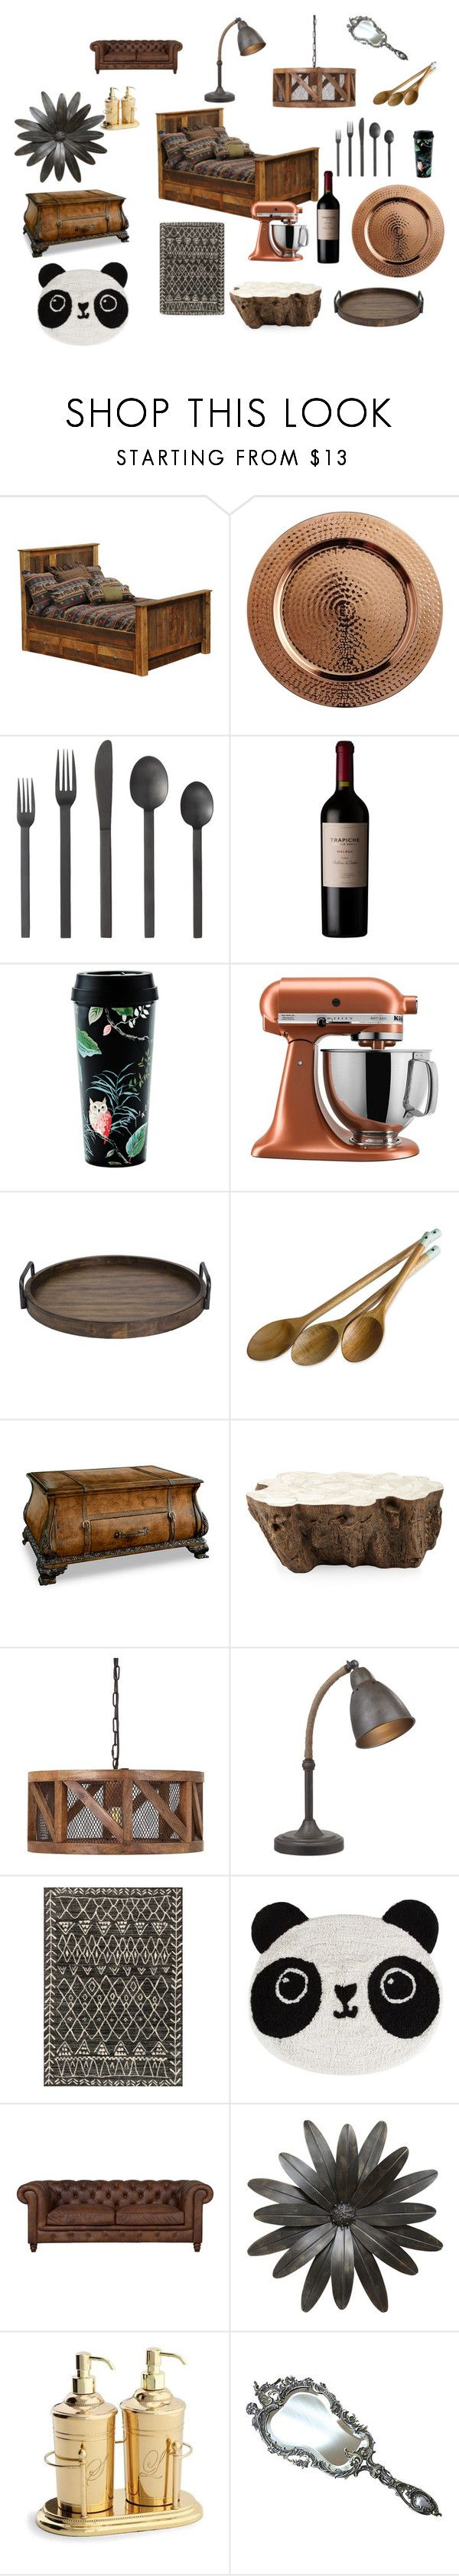 """""""movin out #PolyPresents: Wish List"""" by louise-moos ❤ liked on Polyvore featuring Pier 1 Imports, Kate Spade, KitchenAid, Uttermost, Jamie Oliver, Palecek, Safavieh, Zimmermann, Sass & Belle and John Lewis"""